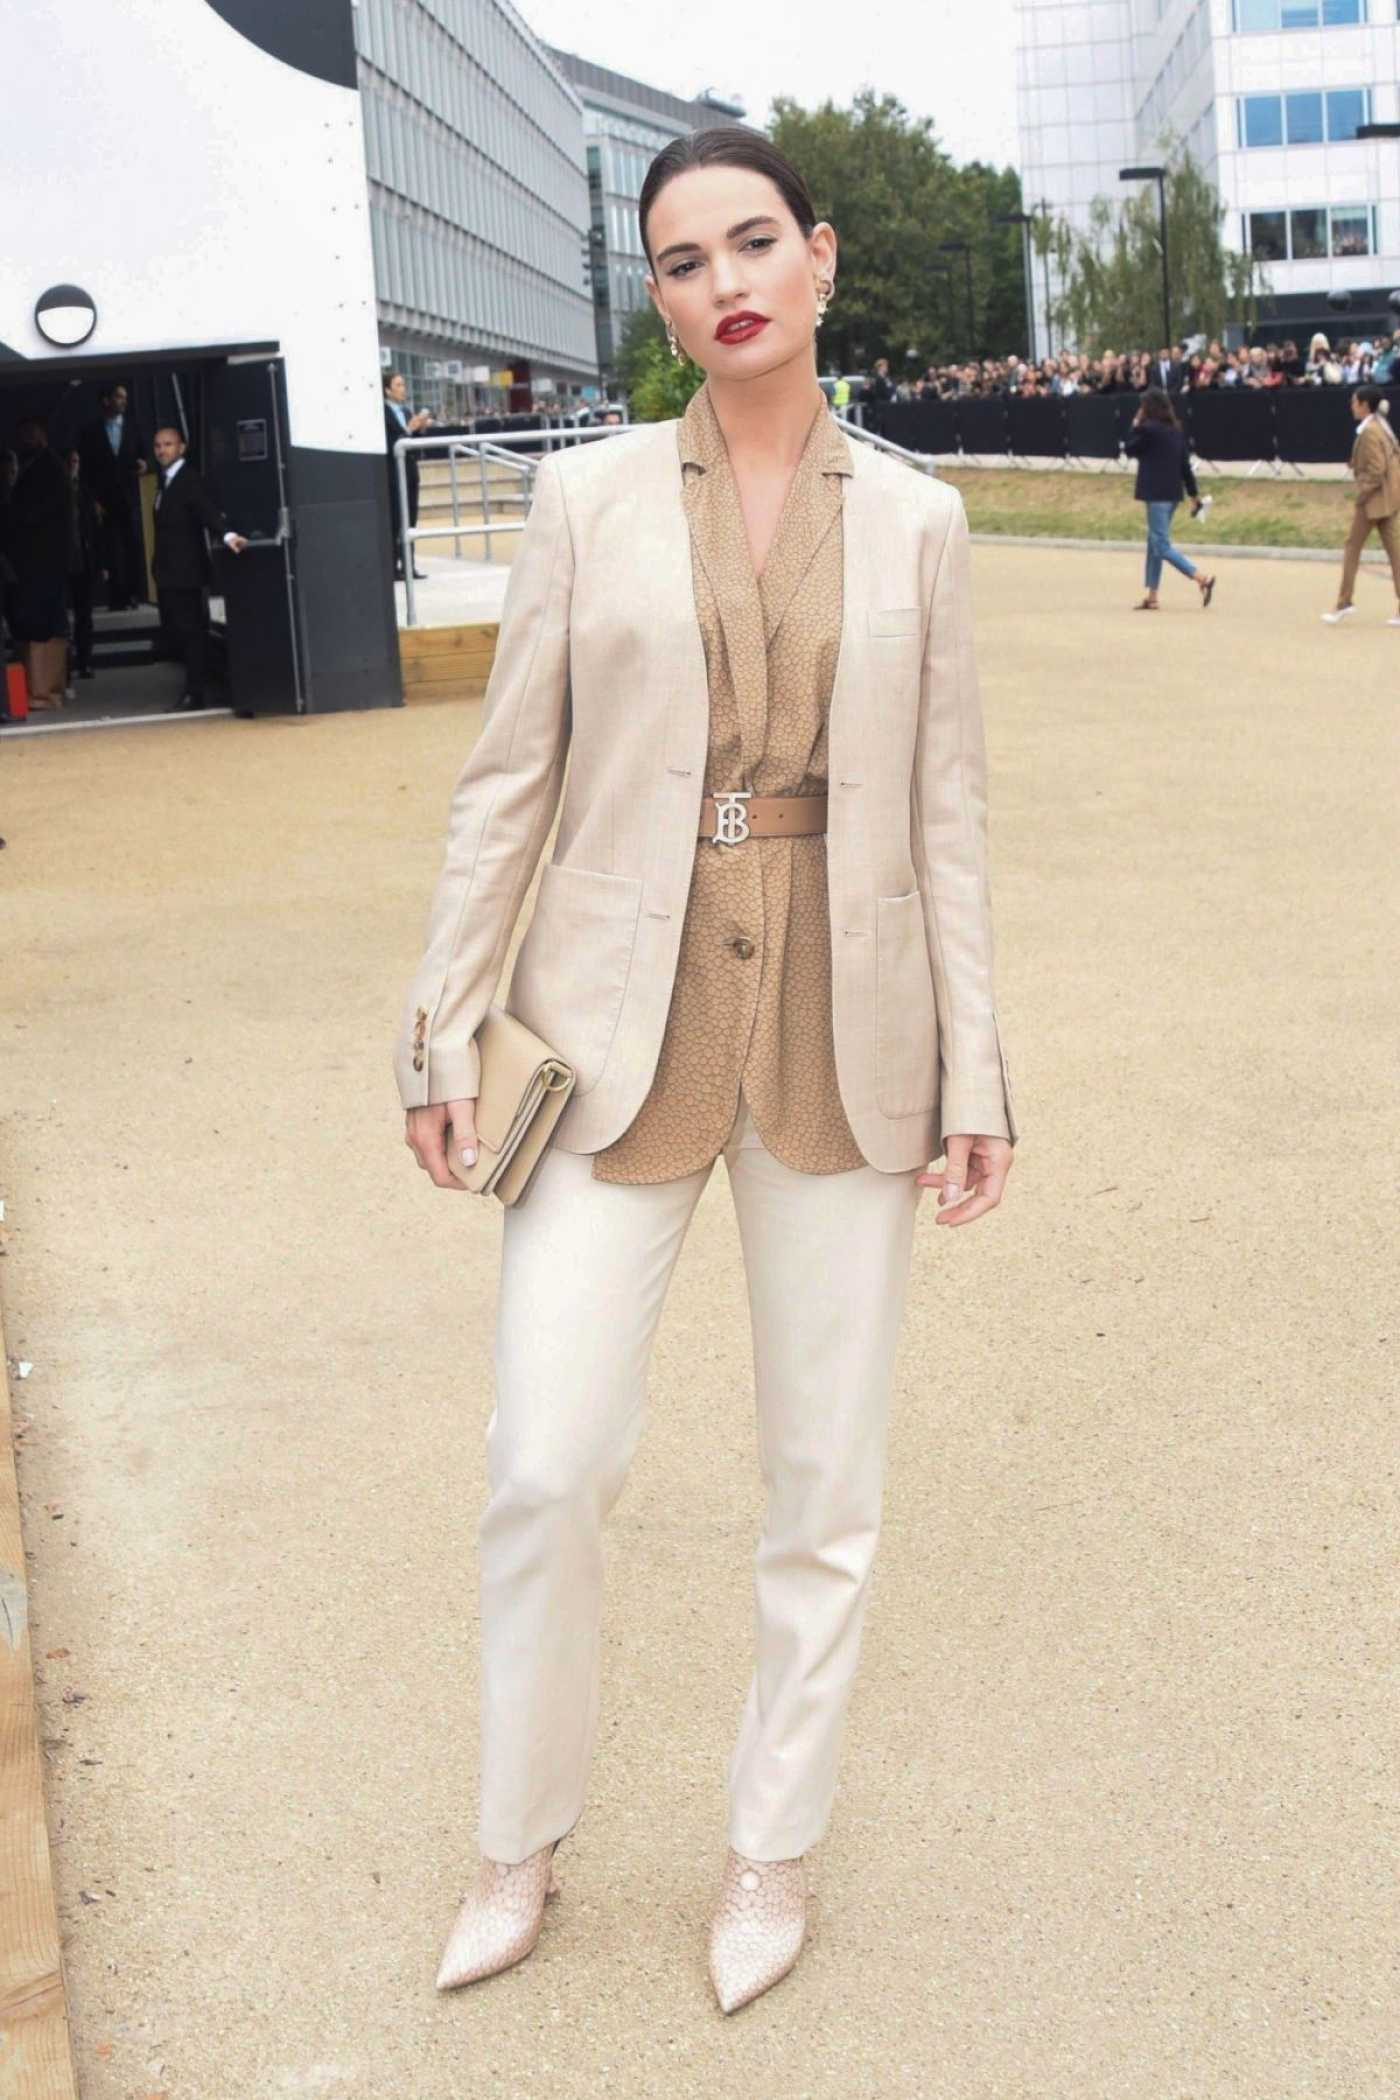 Lily James in a Beige Suit Arrives at the Burberry Fashion Show During 2019 London Fashion Week in London 09/16/2019